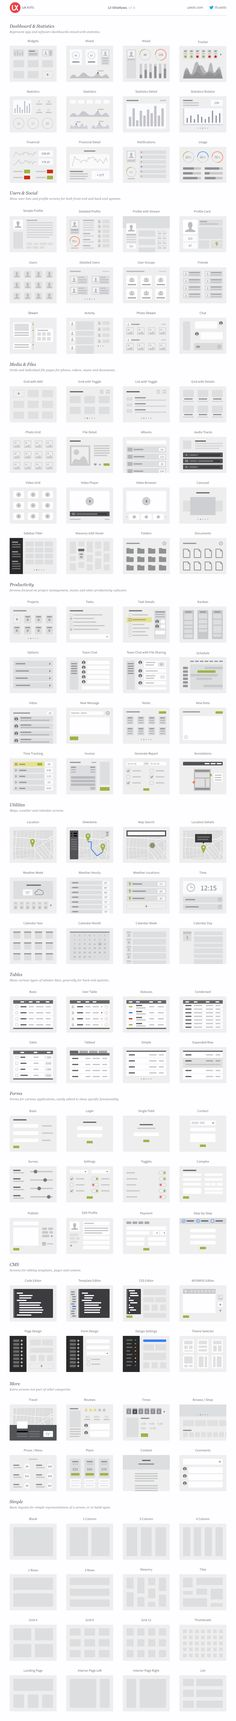 UI Wireflows on Behance